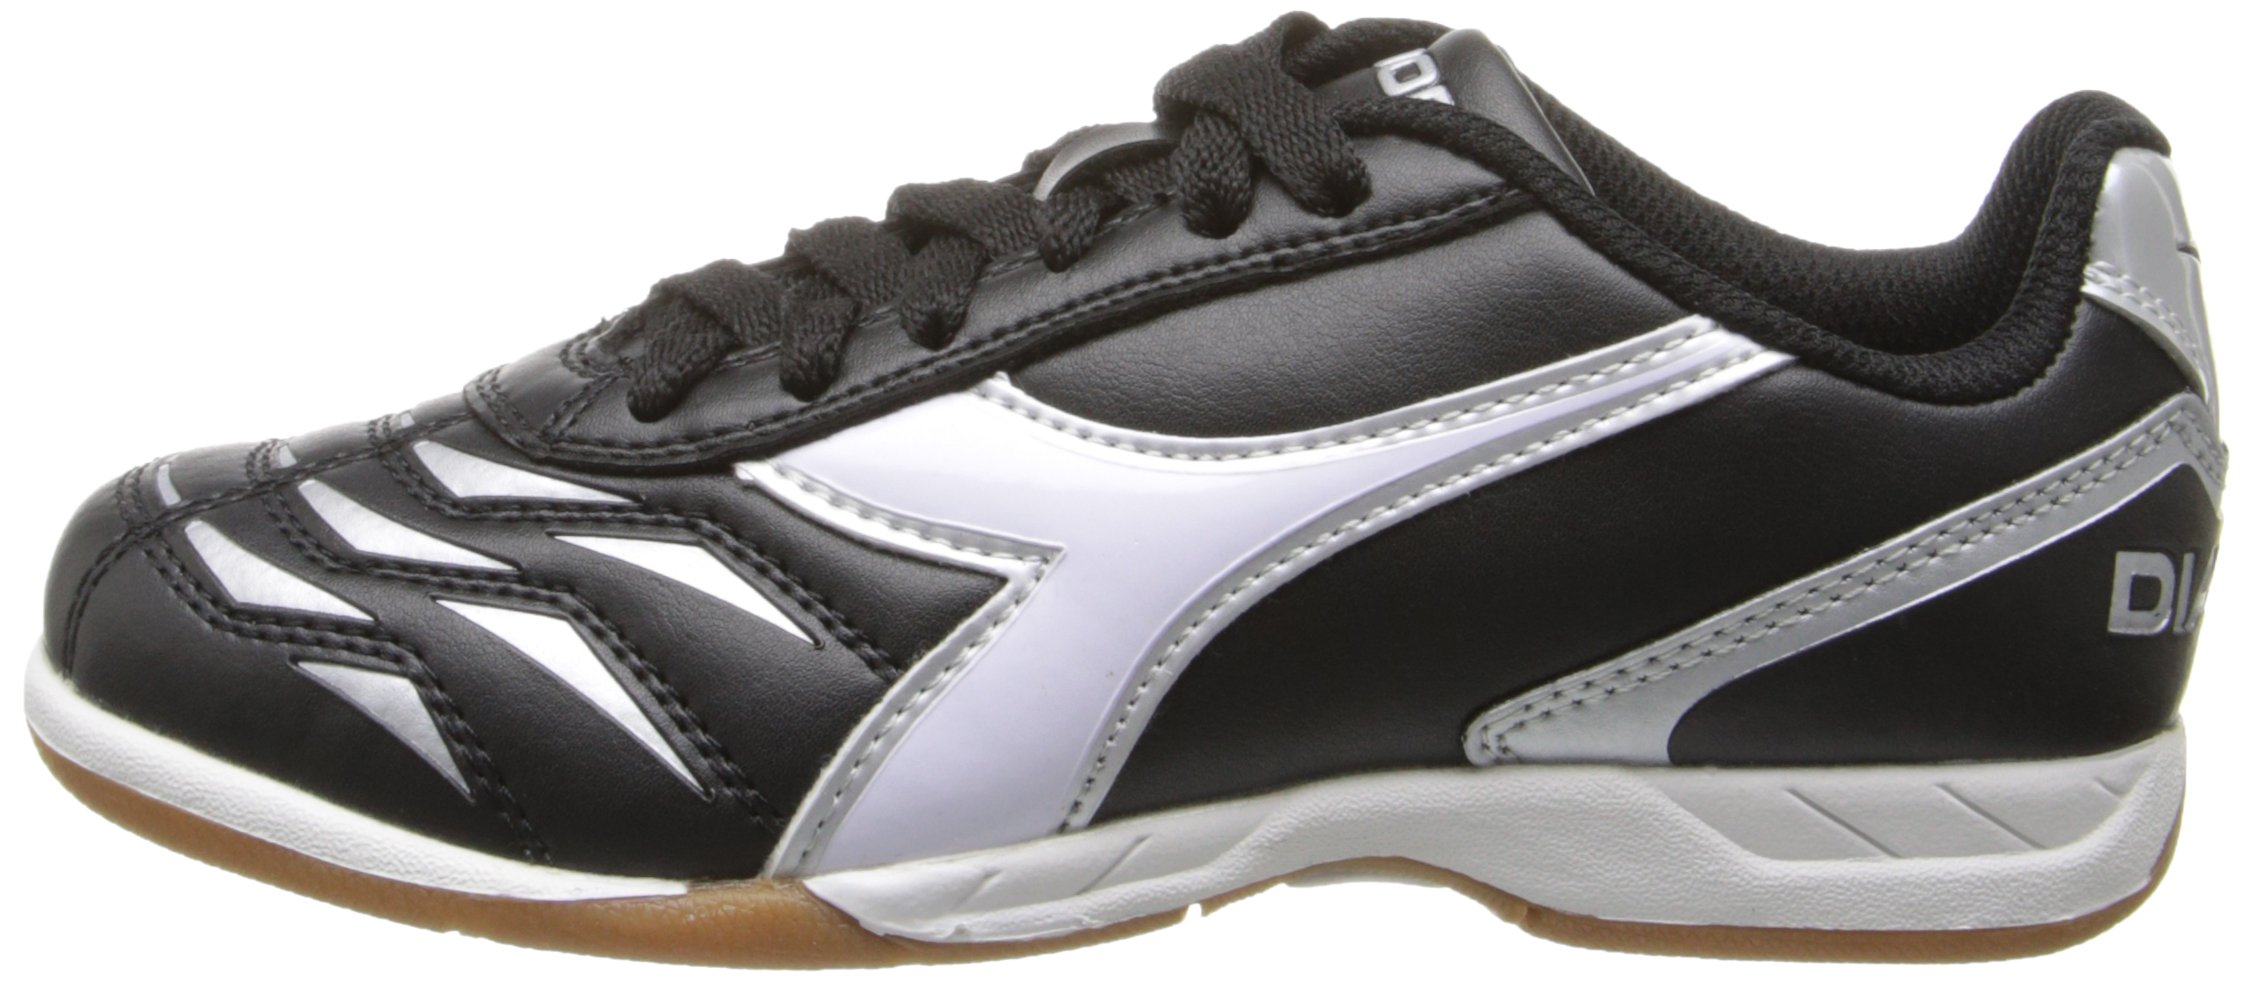 Diadora Capitano ID JR Indoor Soccer Shoe, Black/White, 3.5 M US Big Kid by Diadora (Image #5)